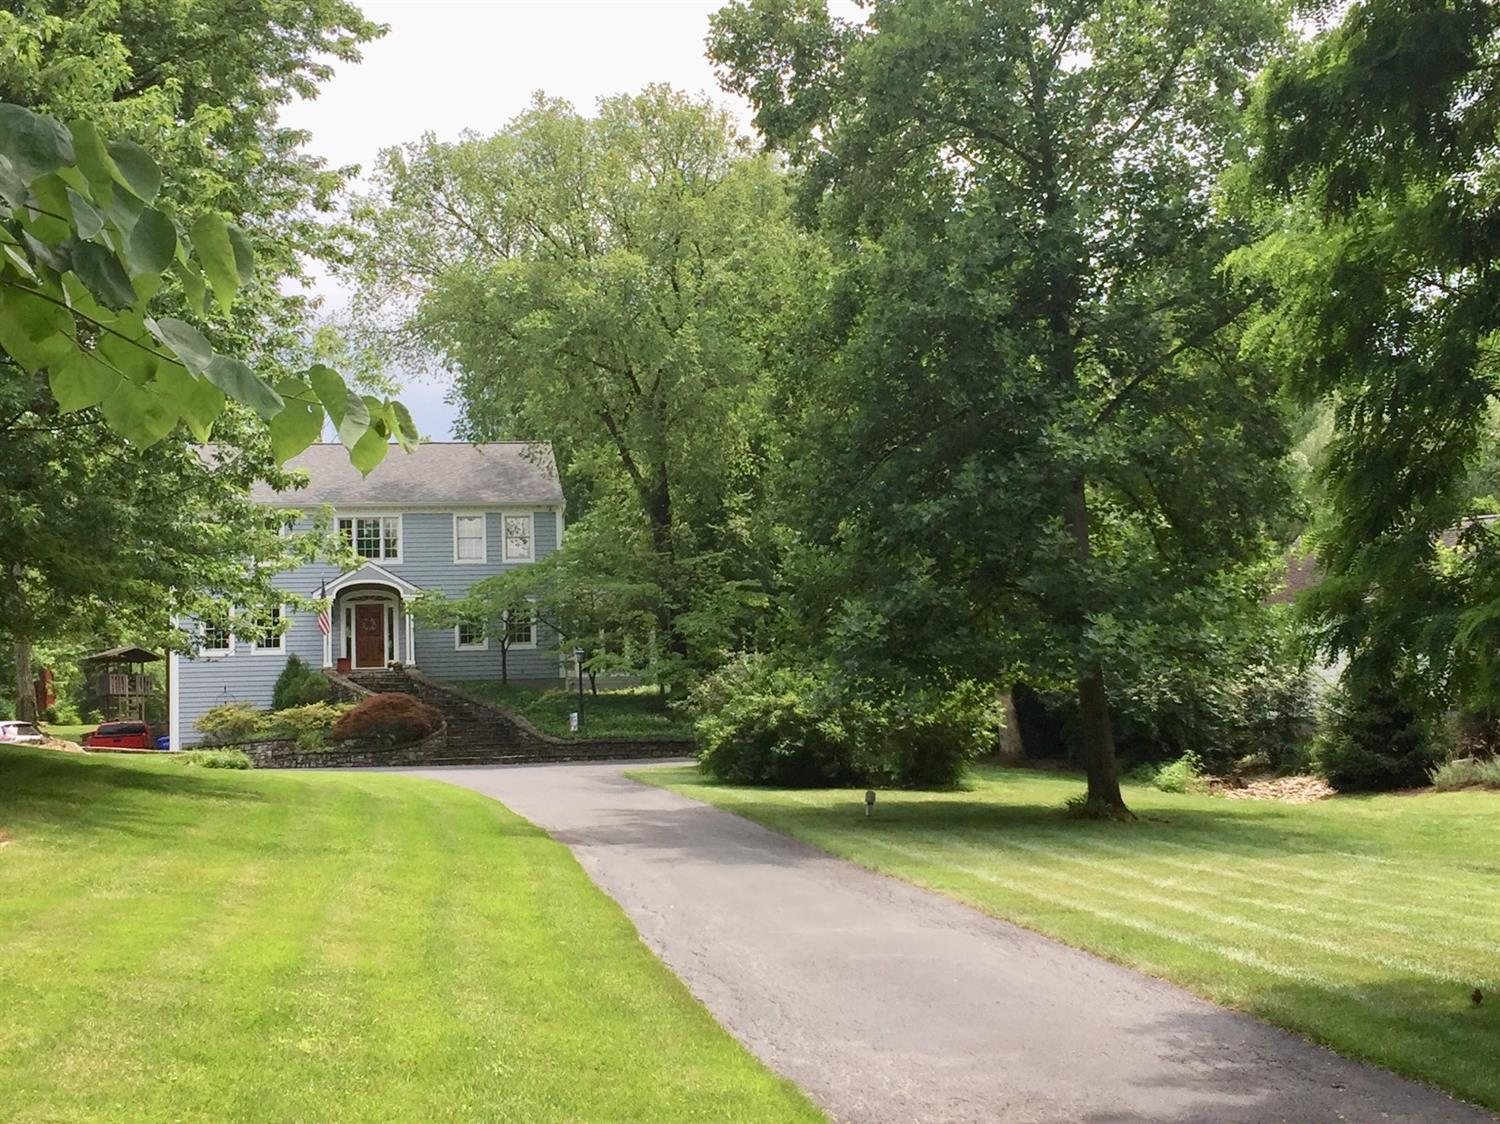 Photo 1 for 7425 Demar Rd Indian Hill, OH 45243